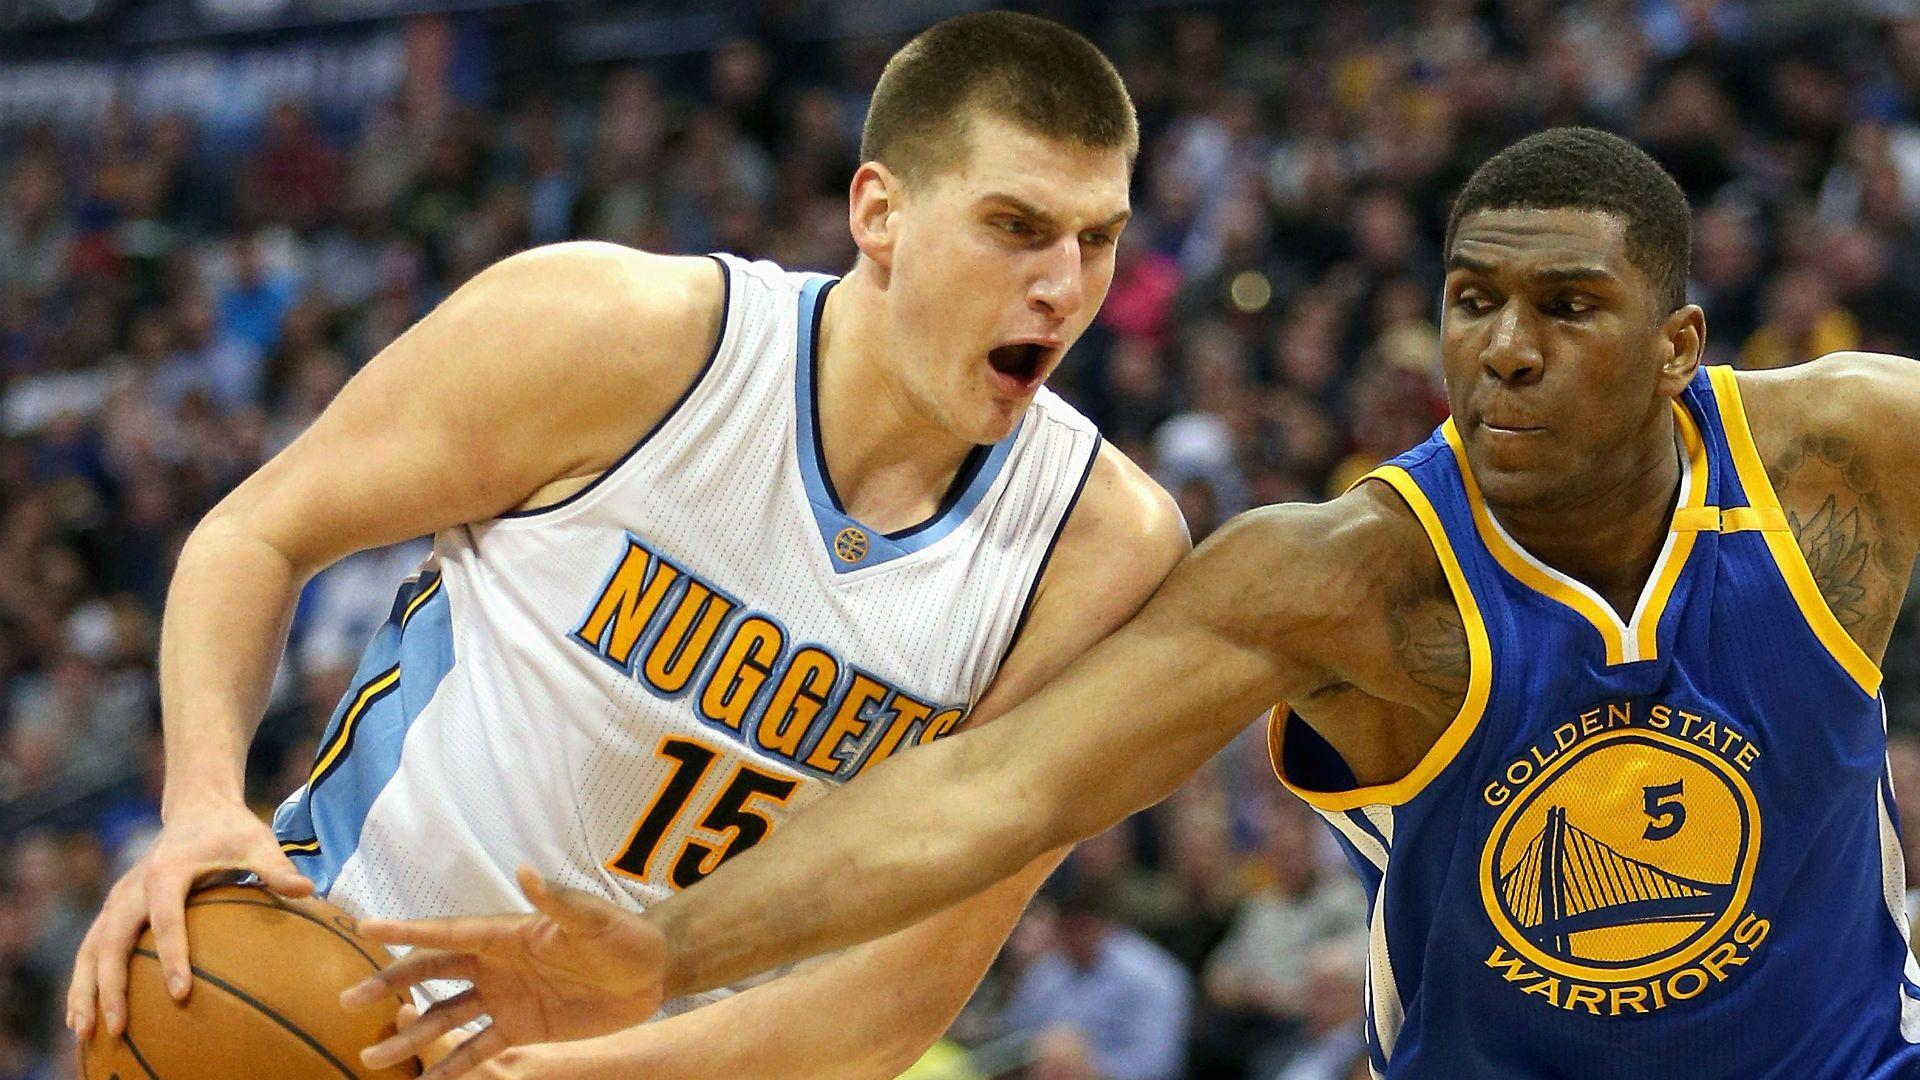 Nikola Jokic continues hot play as Nuggets knock off Pacers | NBA ...